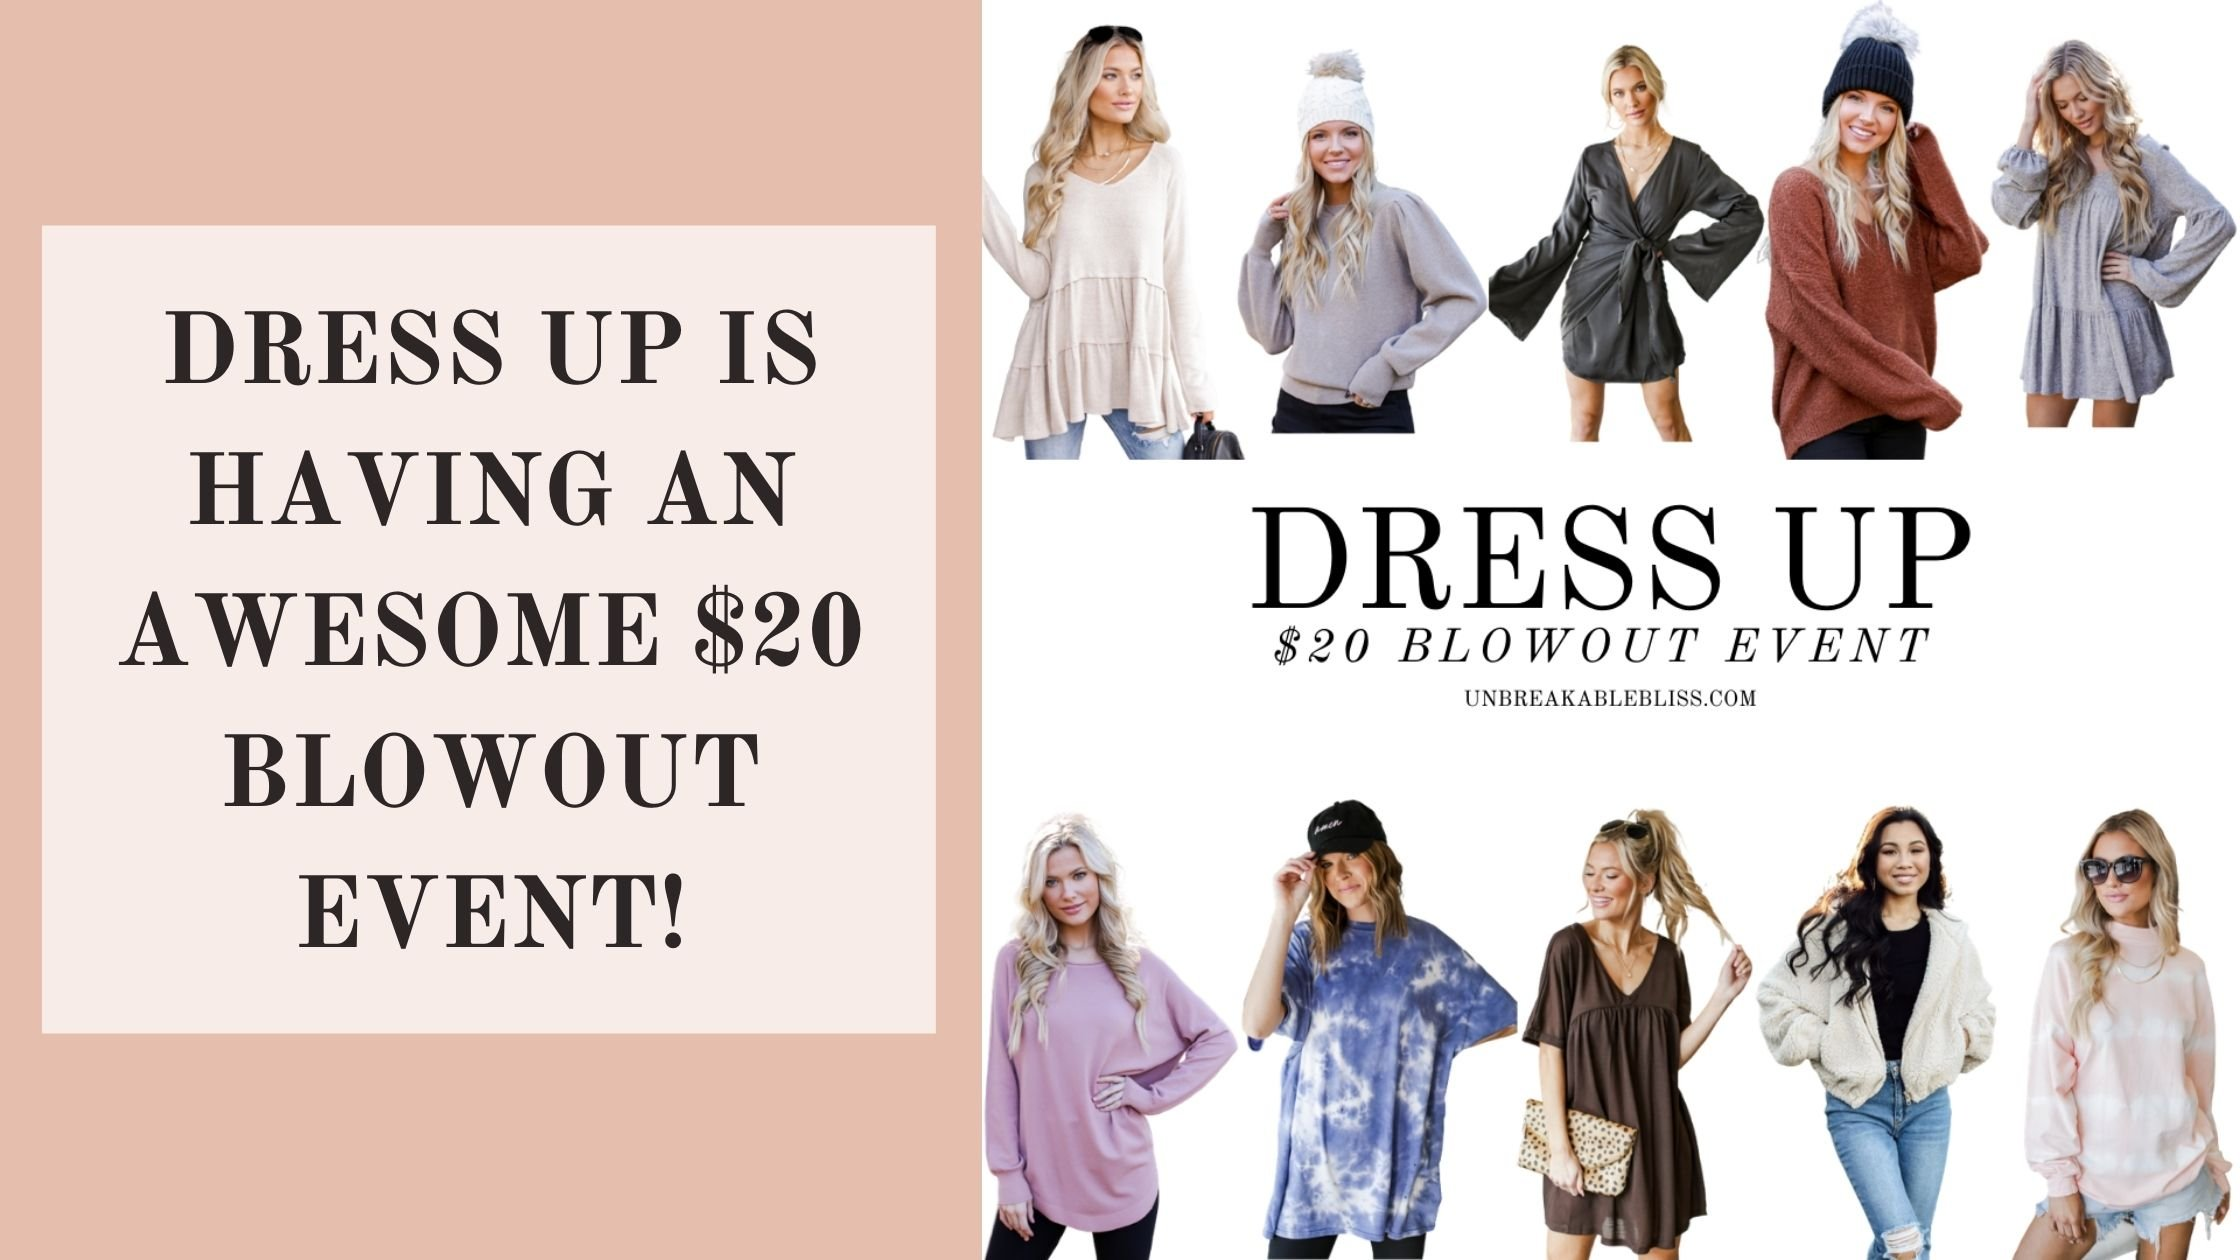 Dress Up Is Having An Awesome $20 Blowout Event